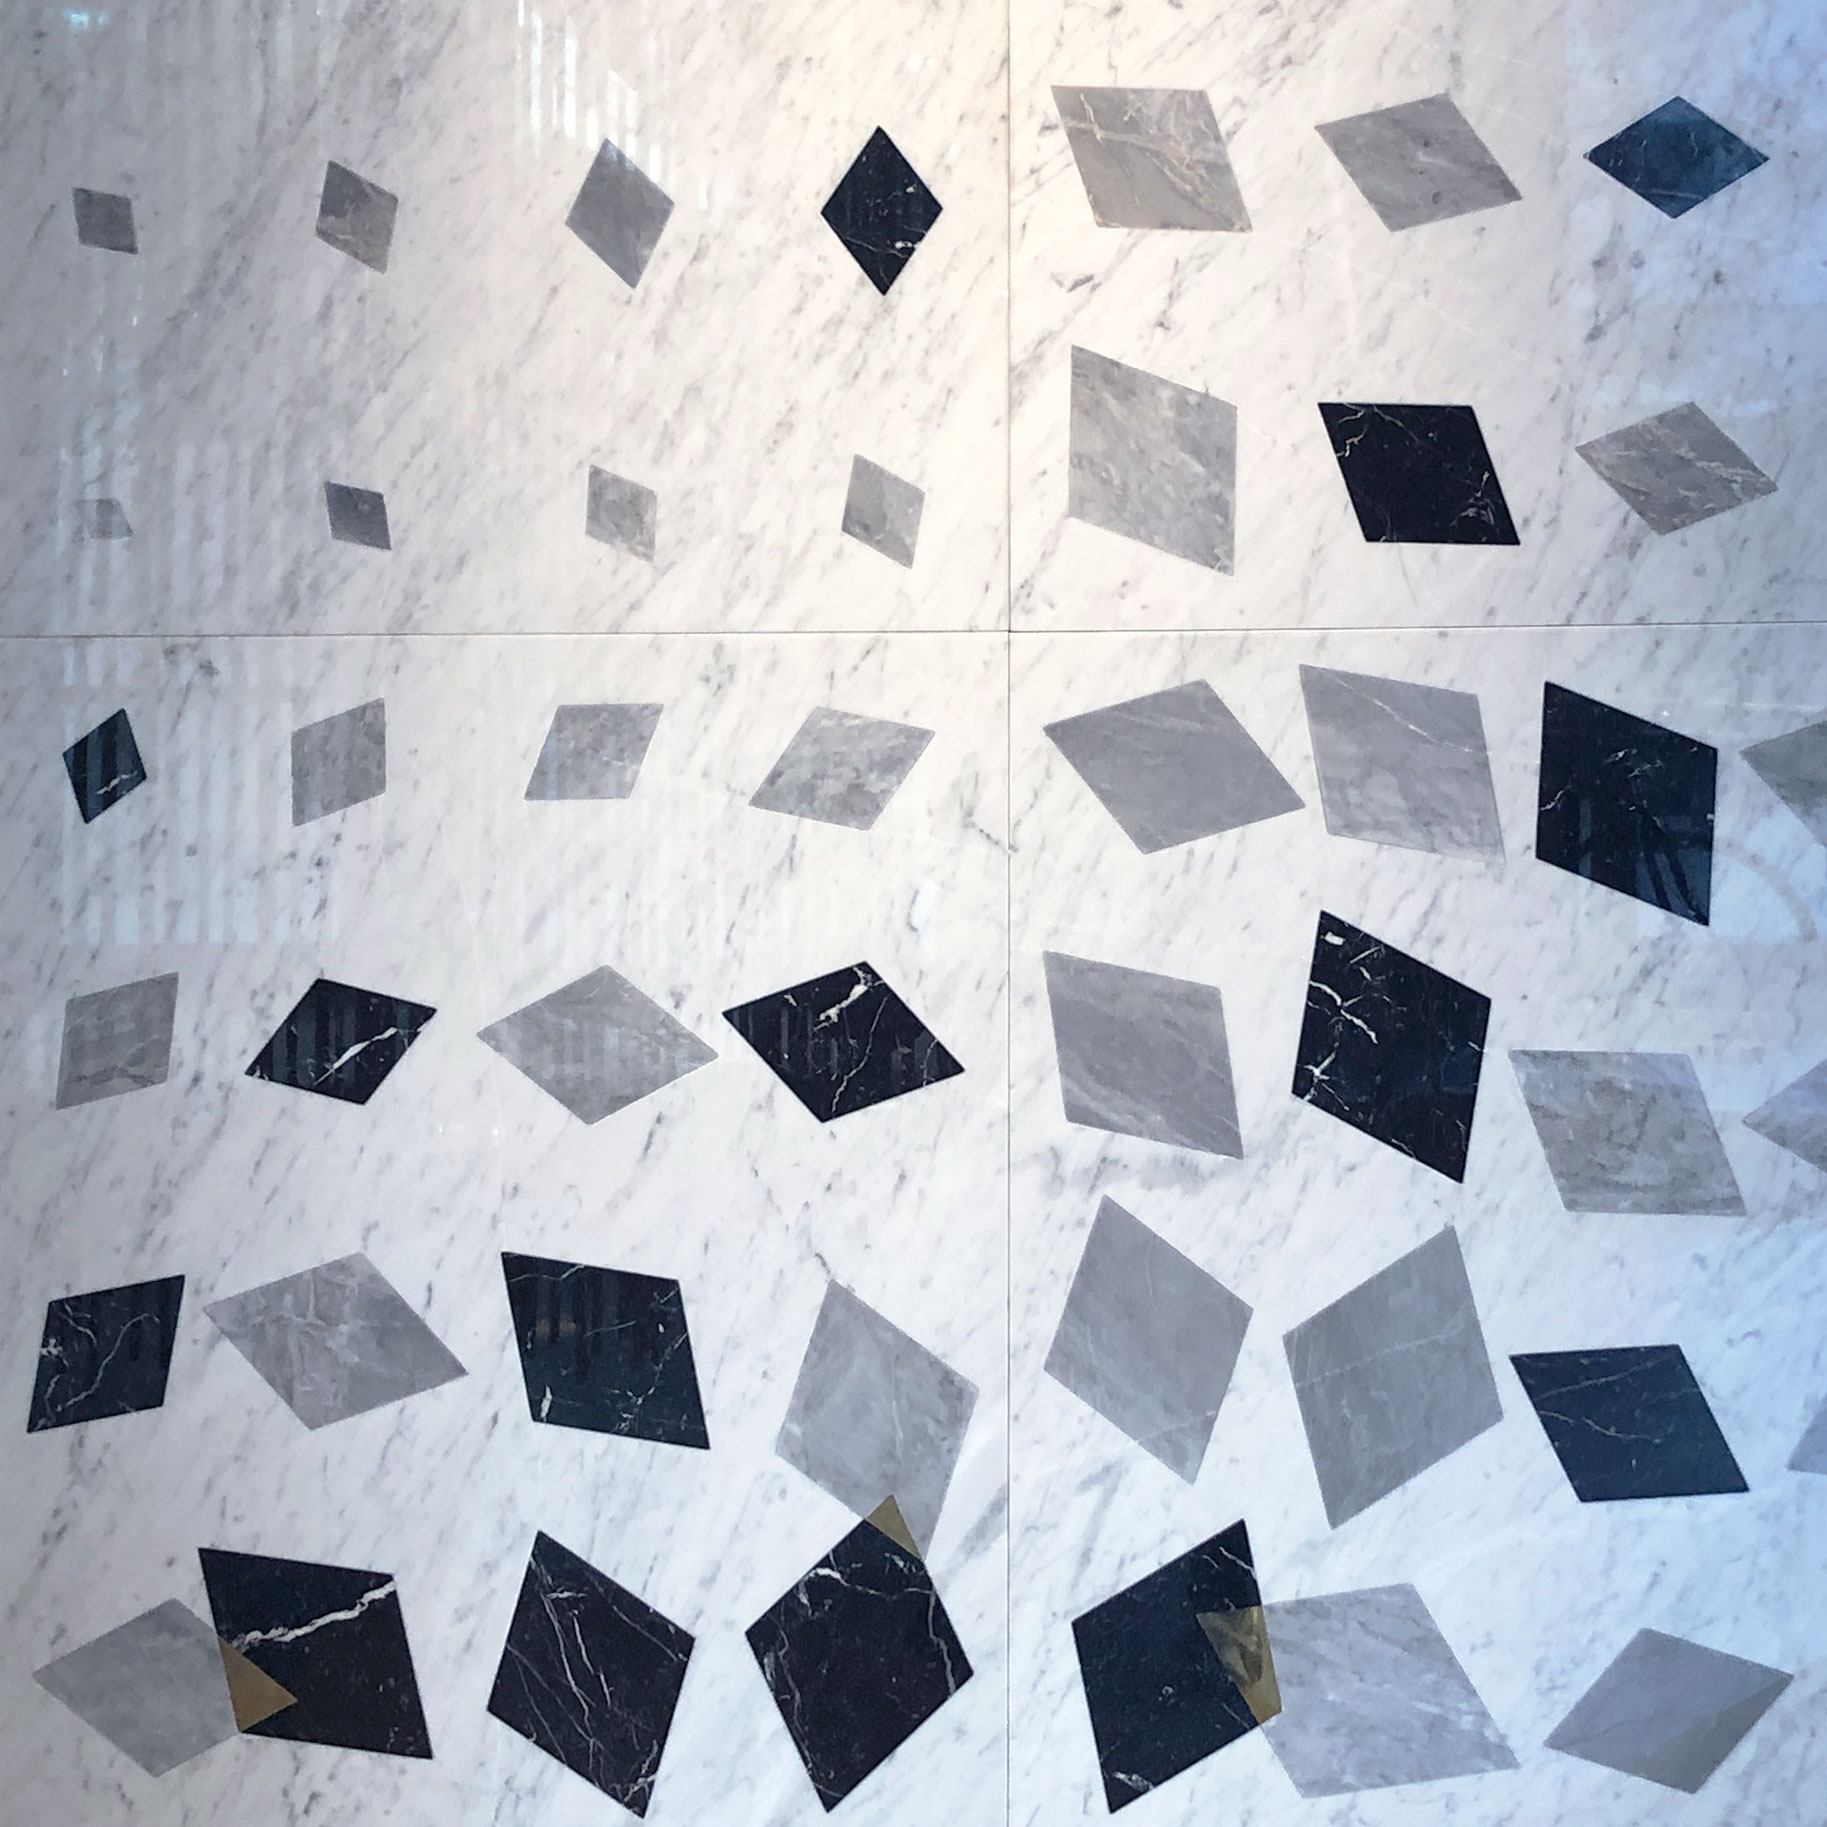 Falling Diamonds - The traditional marble inlaying technique of 'intarsio' is combined here with a computer-generated pattern. Starting from a single diamond shape, an algorithm is used to represent the fall of the stone blocks in the quarry. The shapes multiply, rotate and merge into each other as they fall. During the fall, where black and grey marble merge, they change into brass expressing the entropy growth generated by the encounter. This Inlay technique can be applied to different stones, please request more information.   | Matter of Stuff